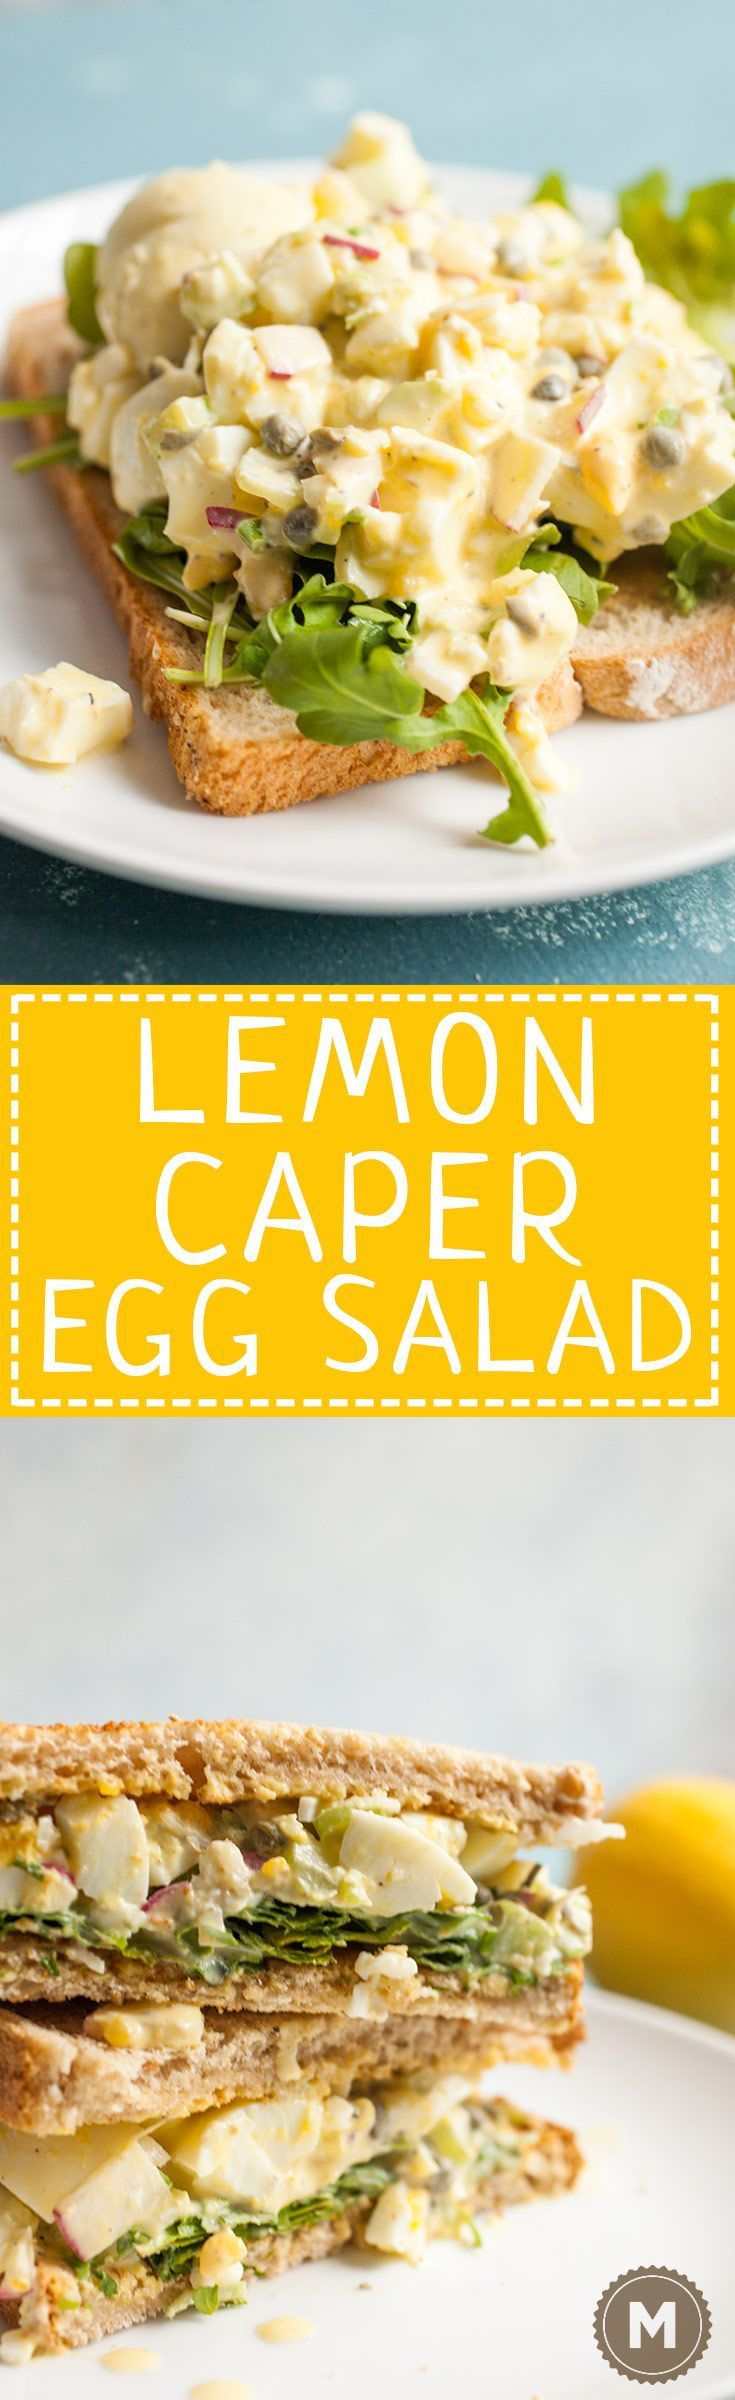 Lemon Caper Egg Salad: Egg salad can be so delicious if you make it right. This version is bright and crunchy with just enough dressing to keep it together. Serve it on white bread with some fresh arugula! | http://macheesmo.com